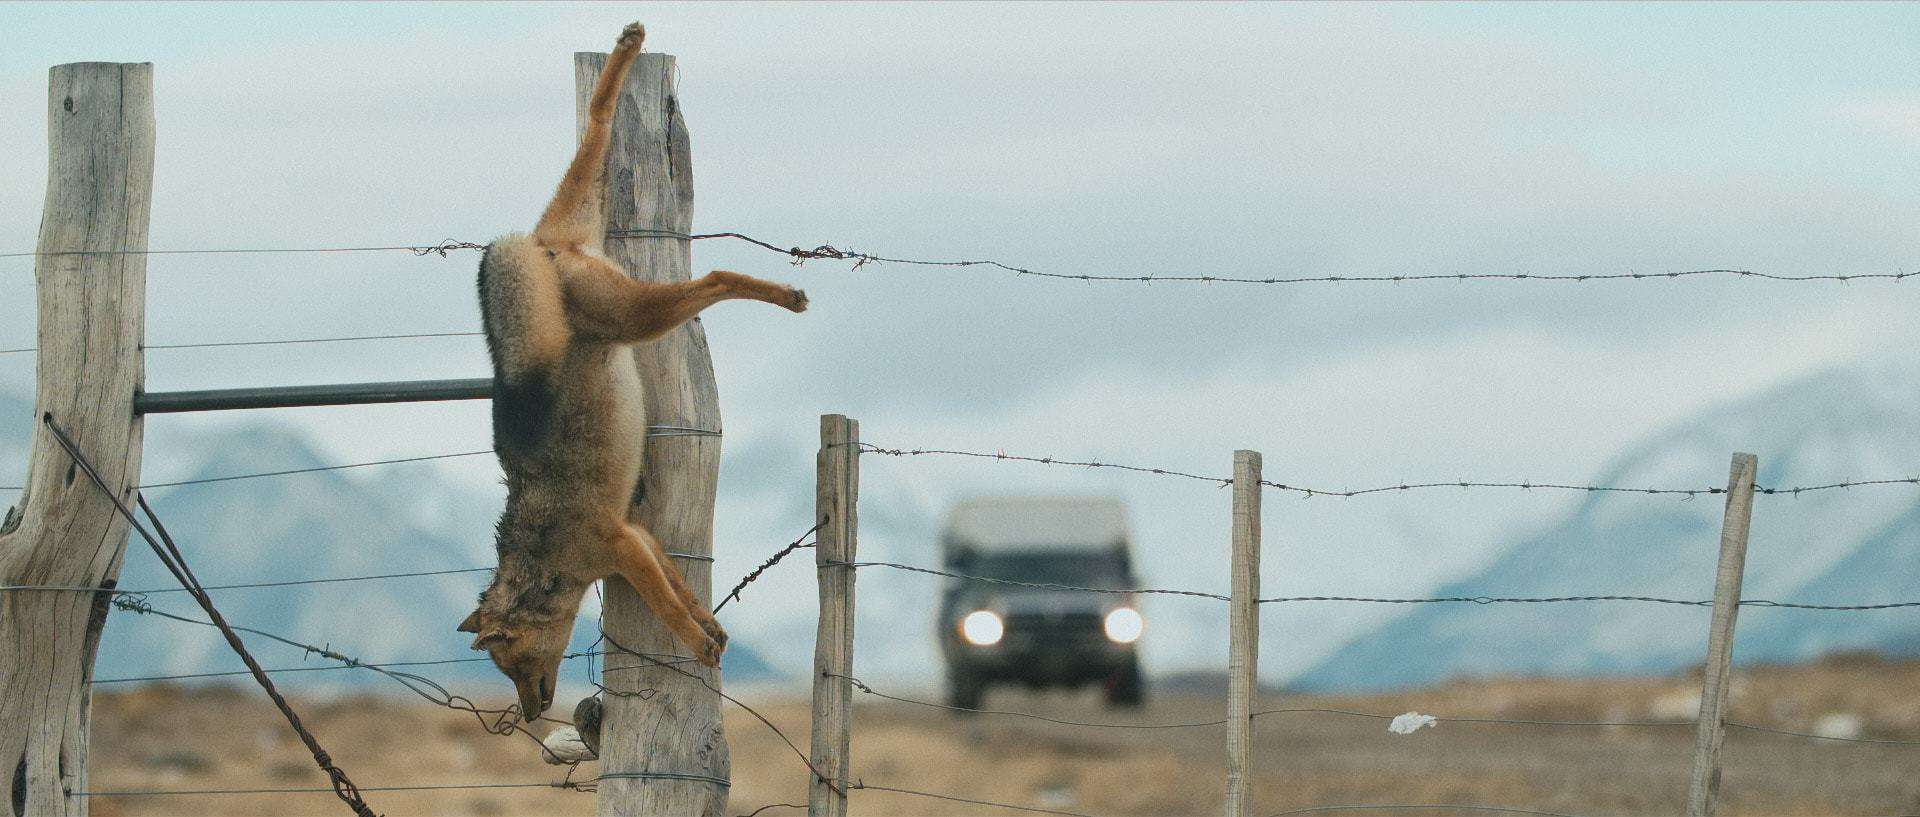 "A dead fox hangs from a fence post in the wild lands of Patagonia - Still frame from the documentary ""Land of The Wind"""